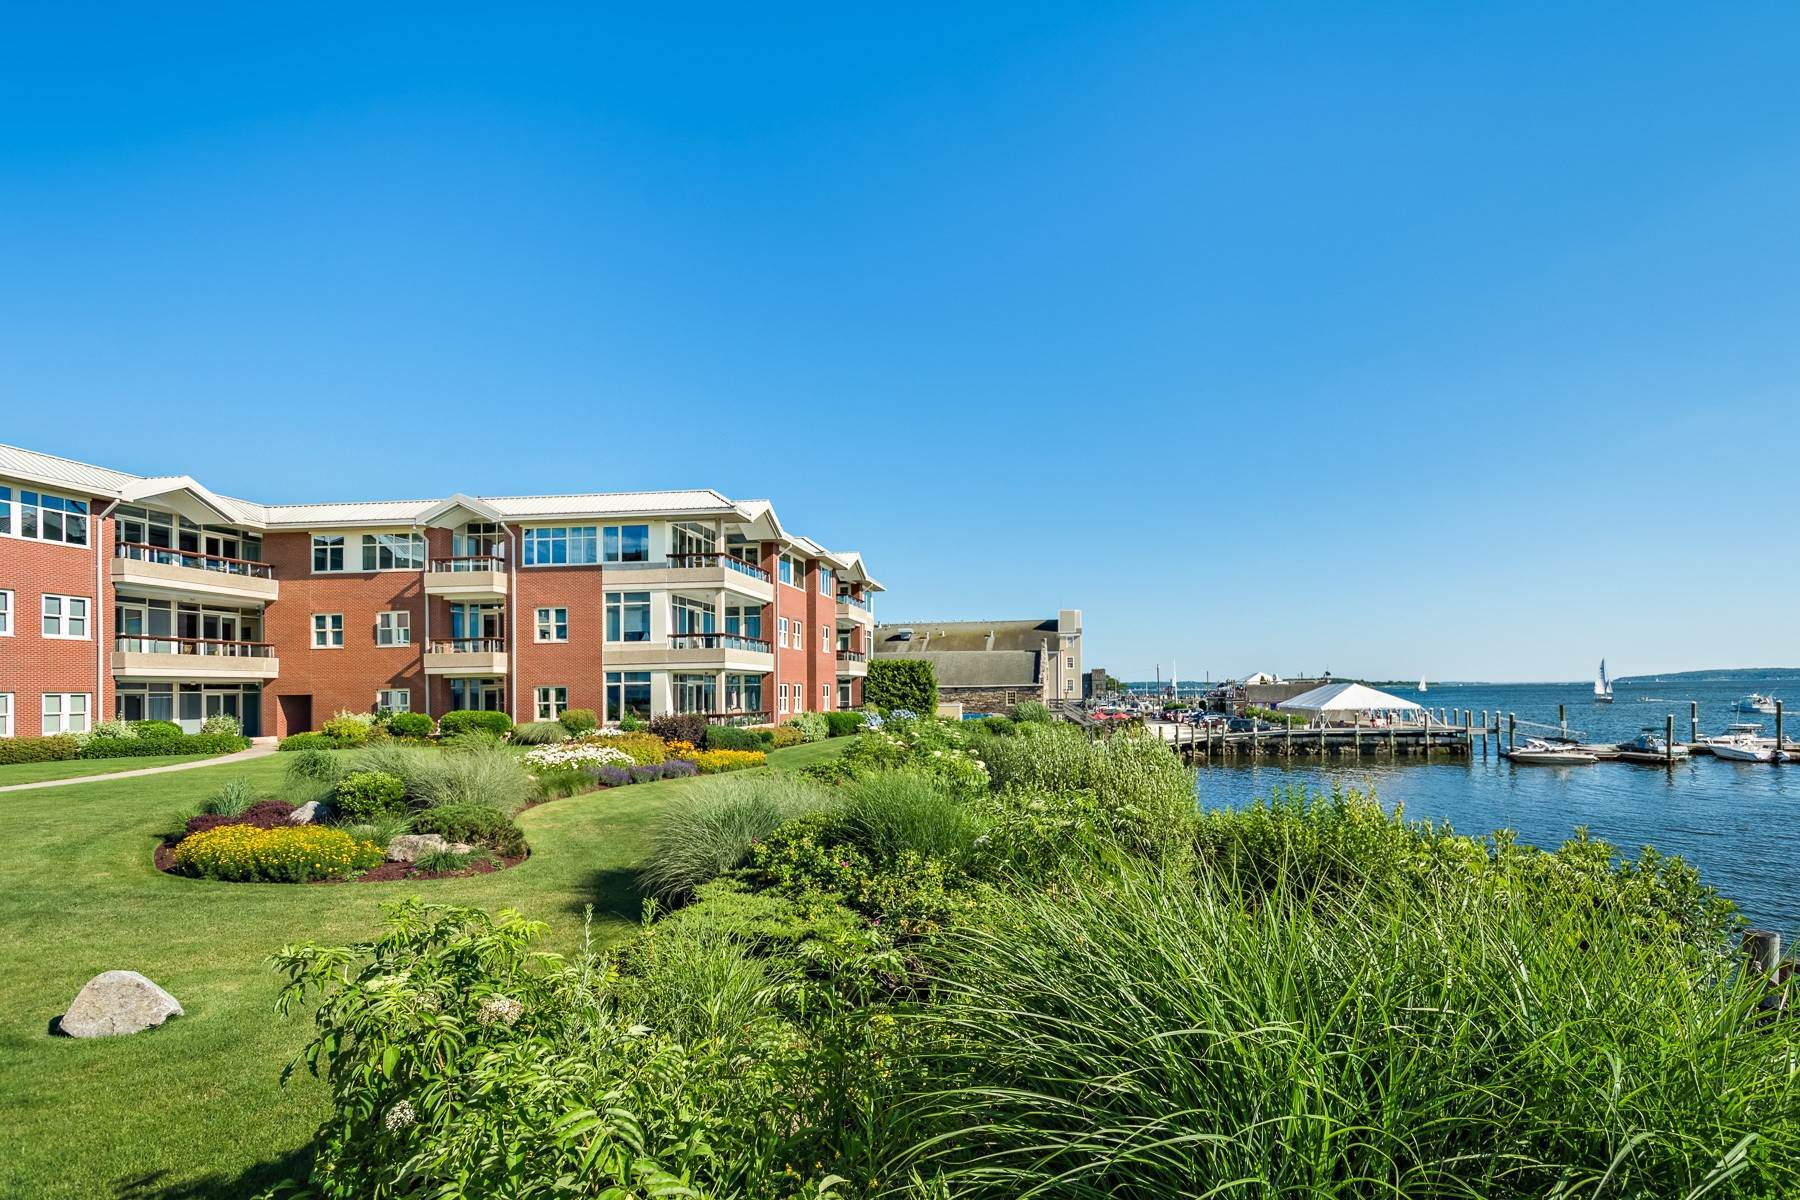 5. Condominiums for Sale at 341 THAMES ST, UNIT#303S, 303S Bristol, Rhode Island 02809 United States